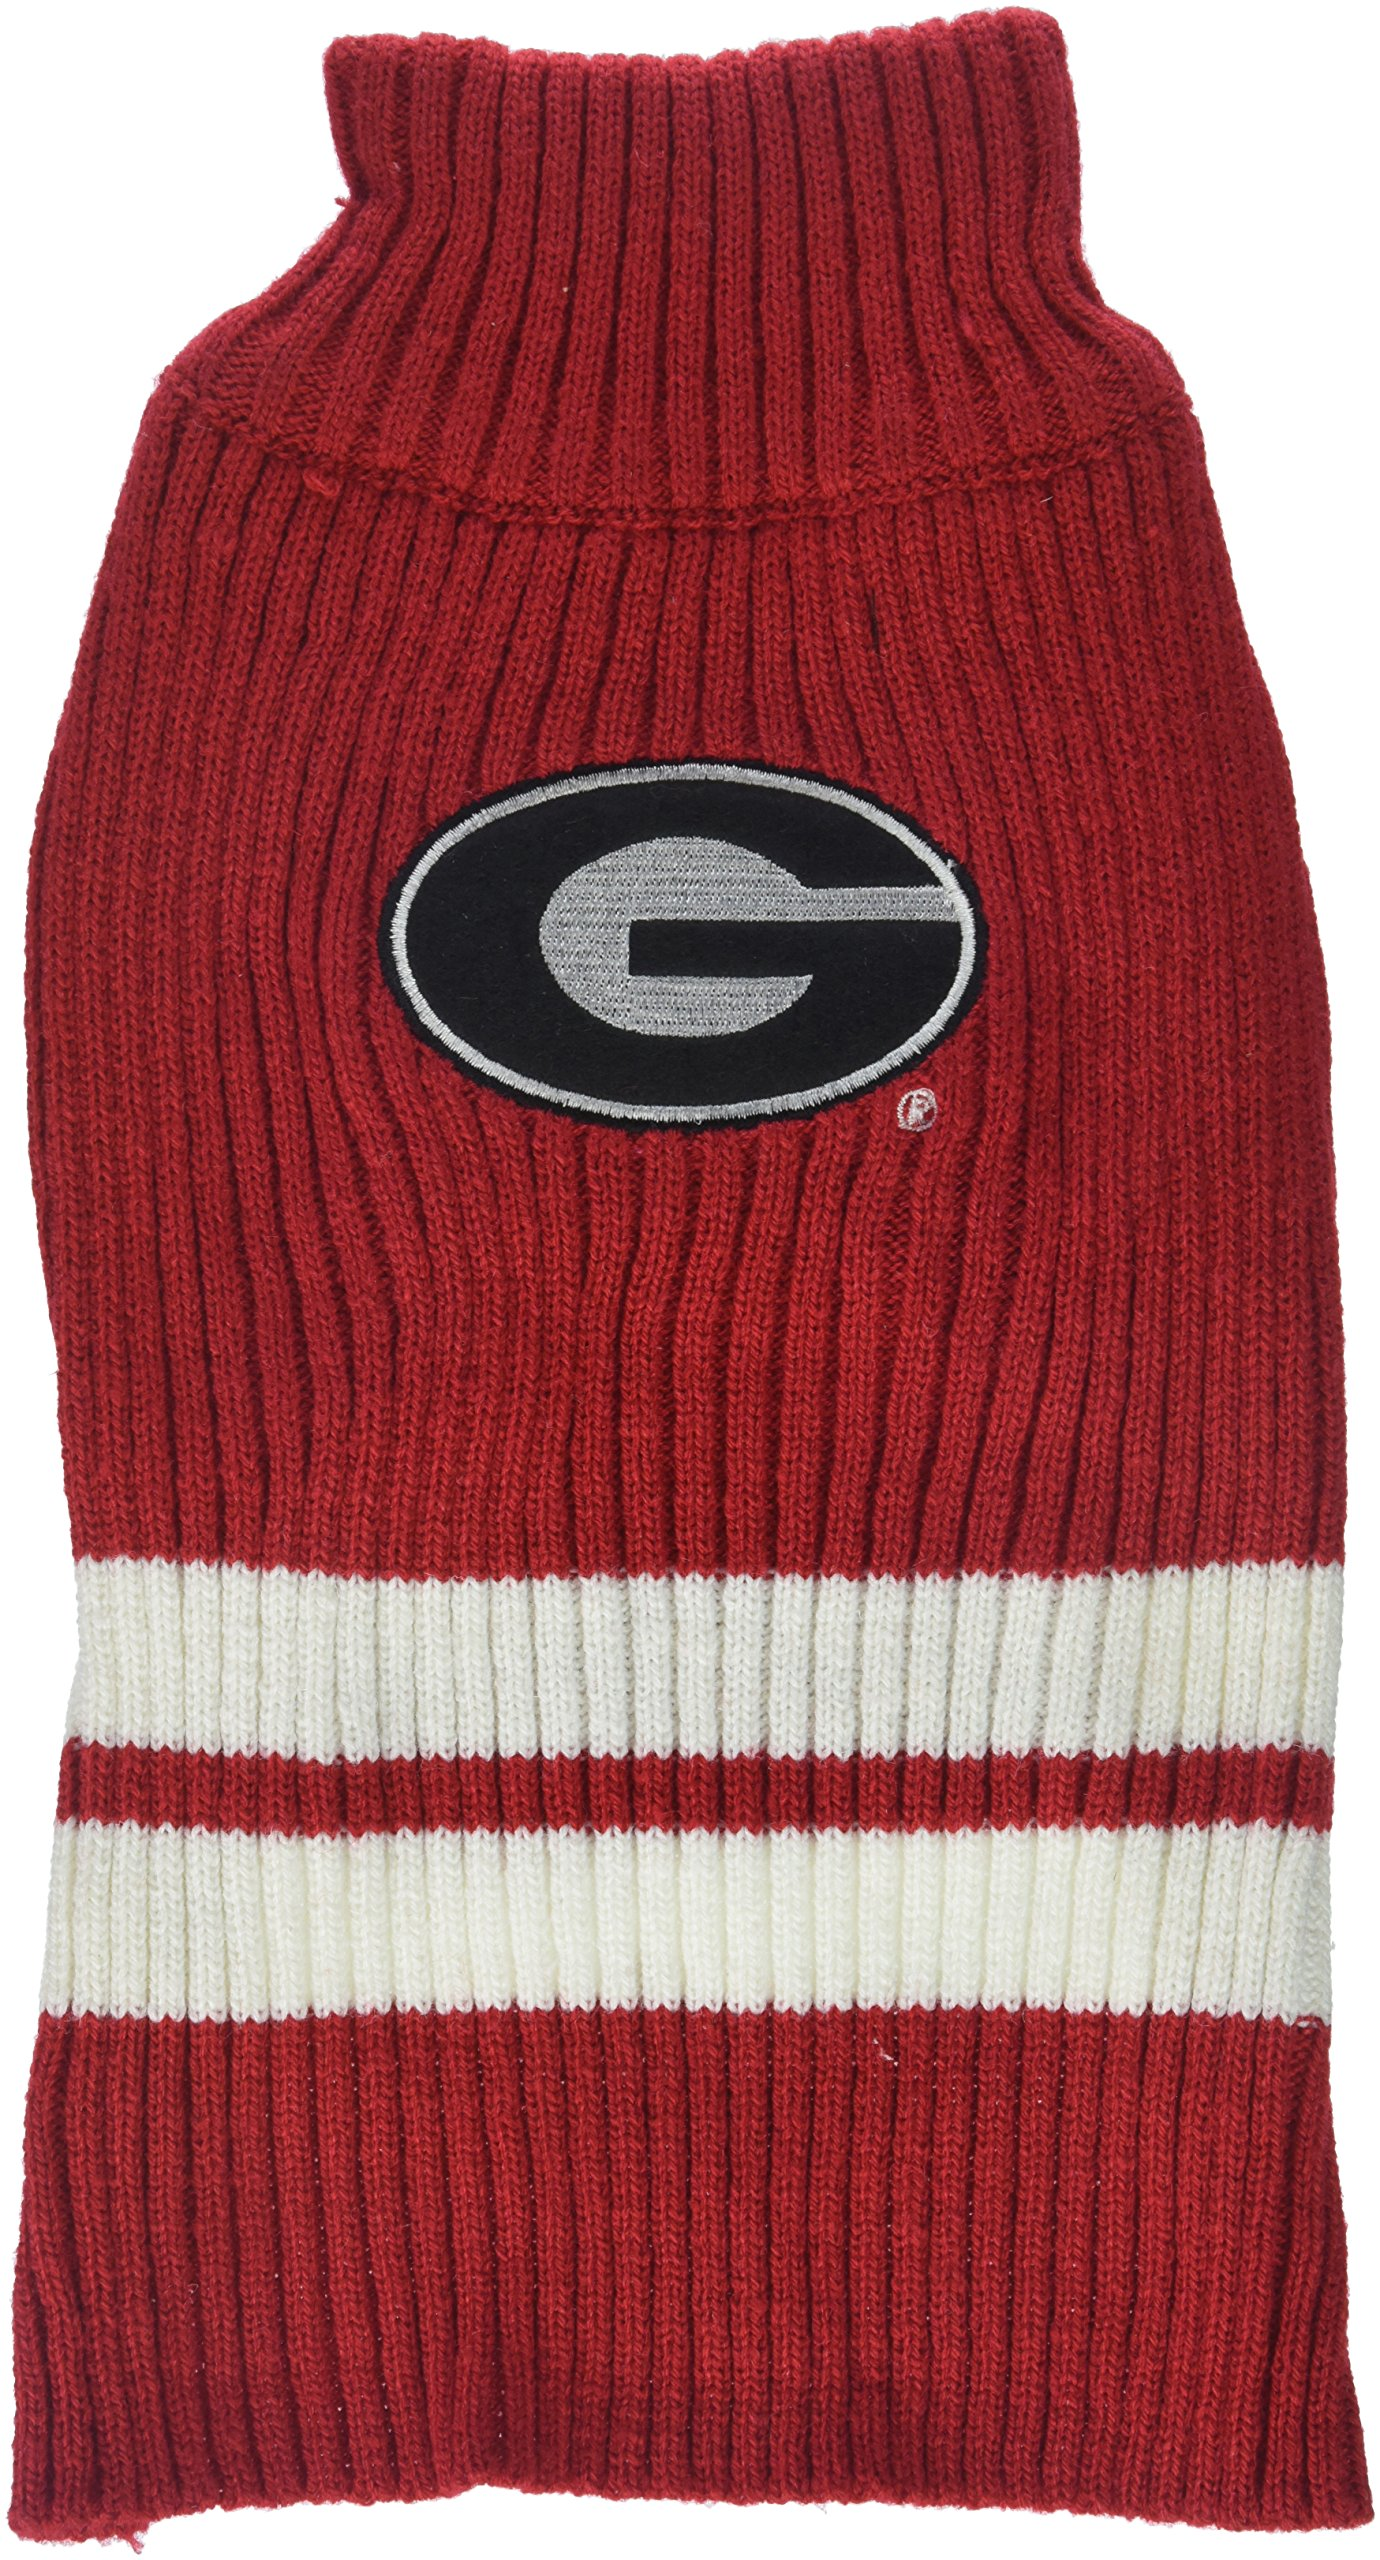 Pets First Collegiate Georgia Bulldogs Pet Sweater, Small by Pets First